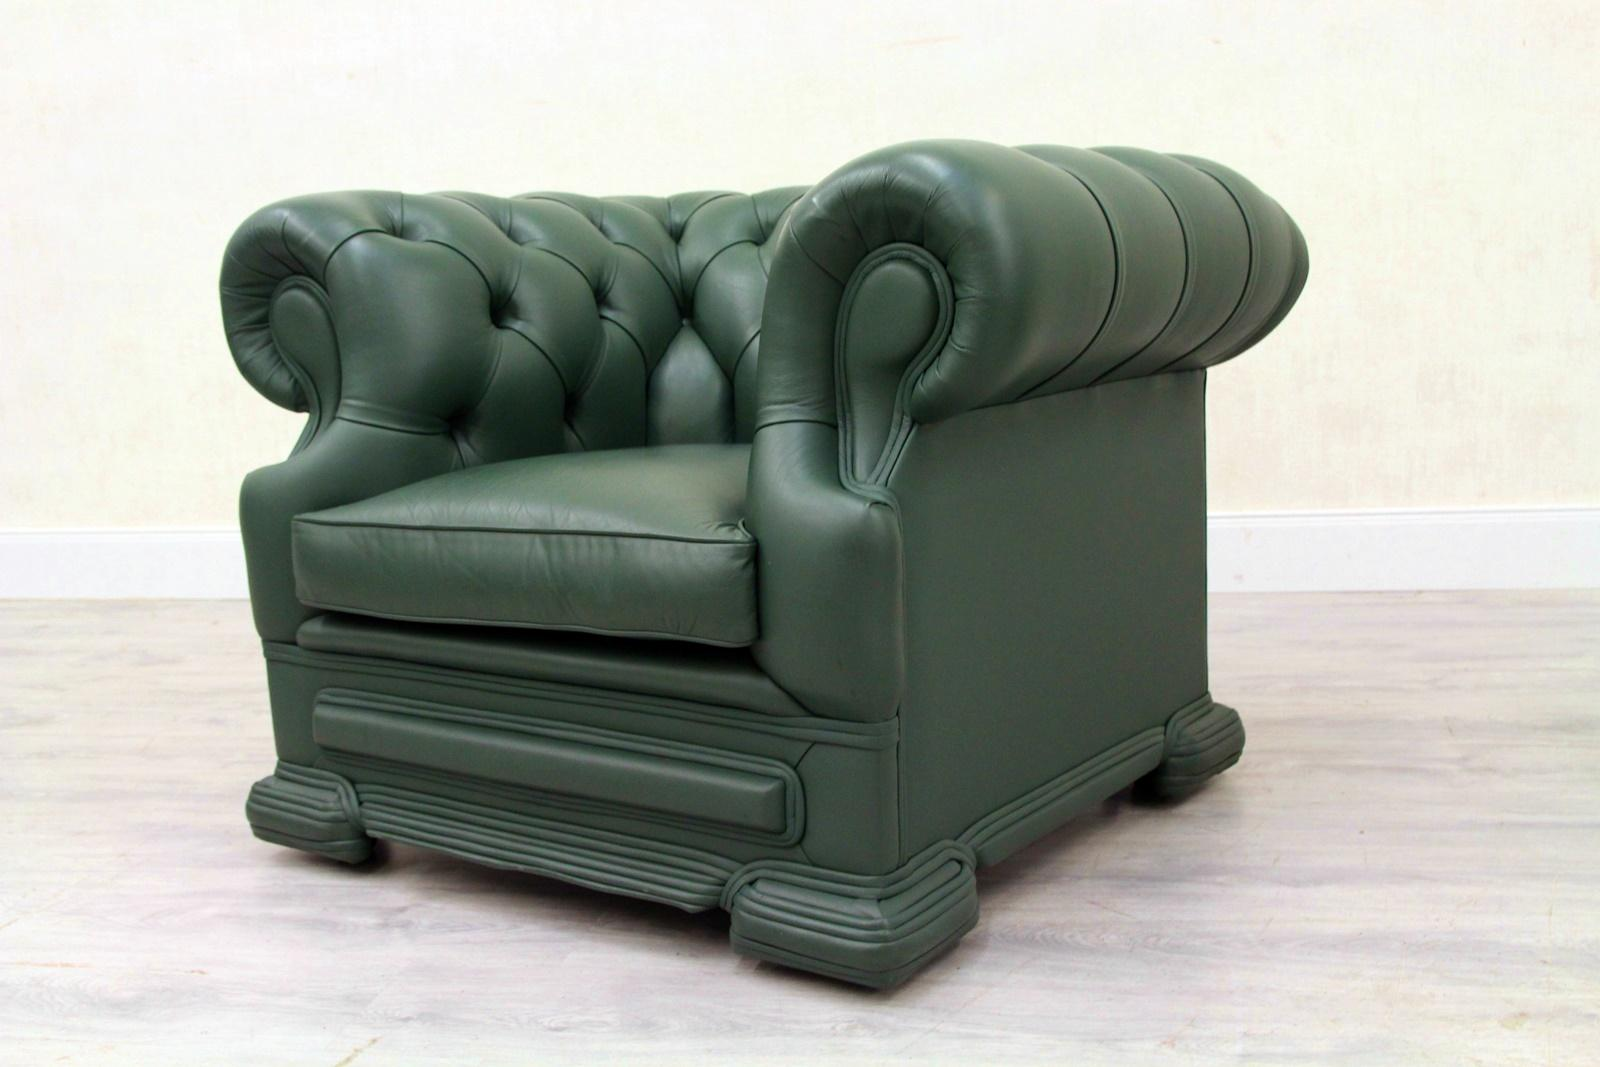 Chesterfield armchair leather antique wing chair recliner armchair In Good  Condition For Sale In Lage,